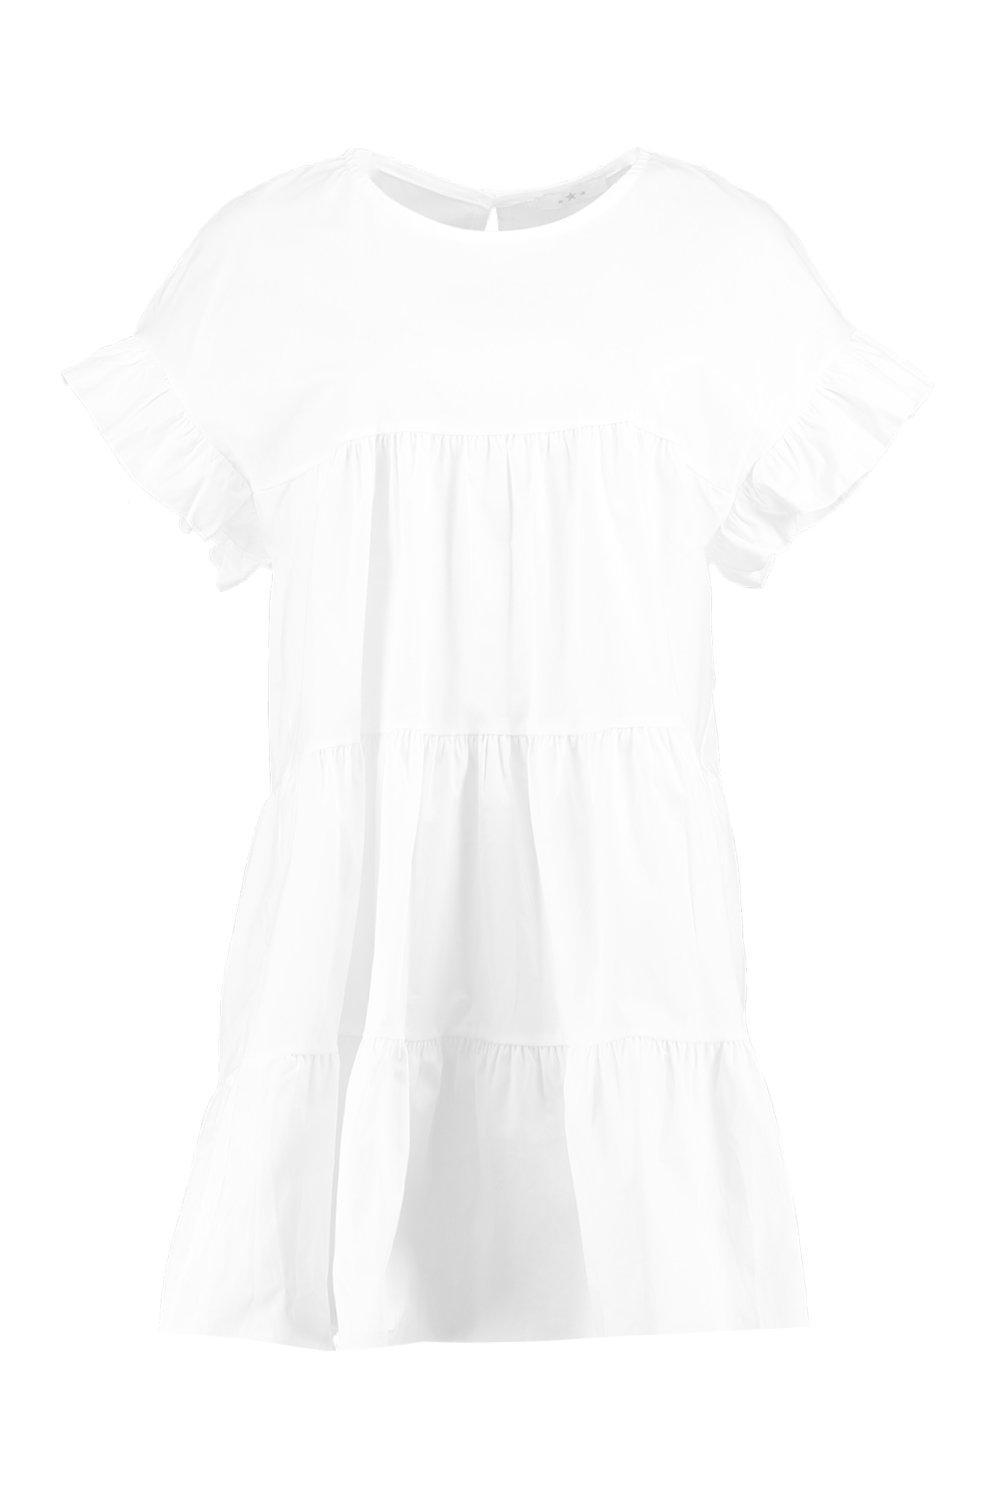 de4e5cf9a707 Gallery. Previously sold at: Boohoo · Women's Tiered Dresses